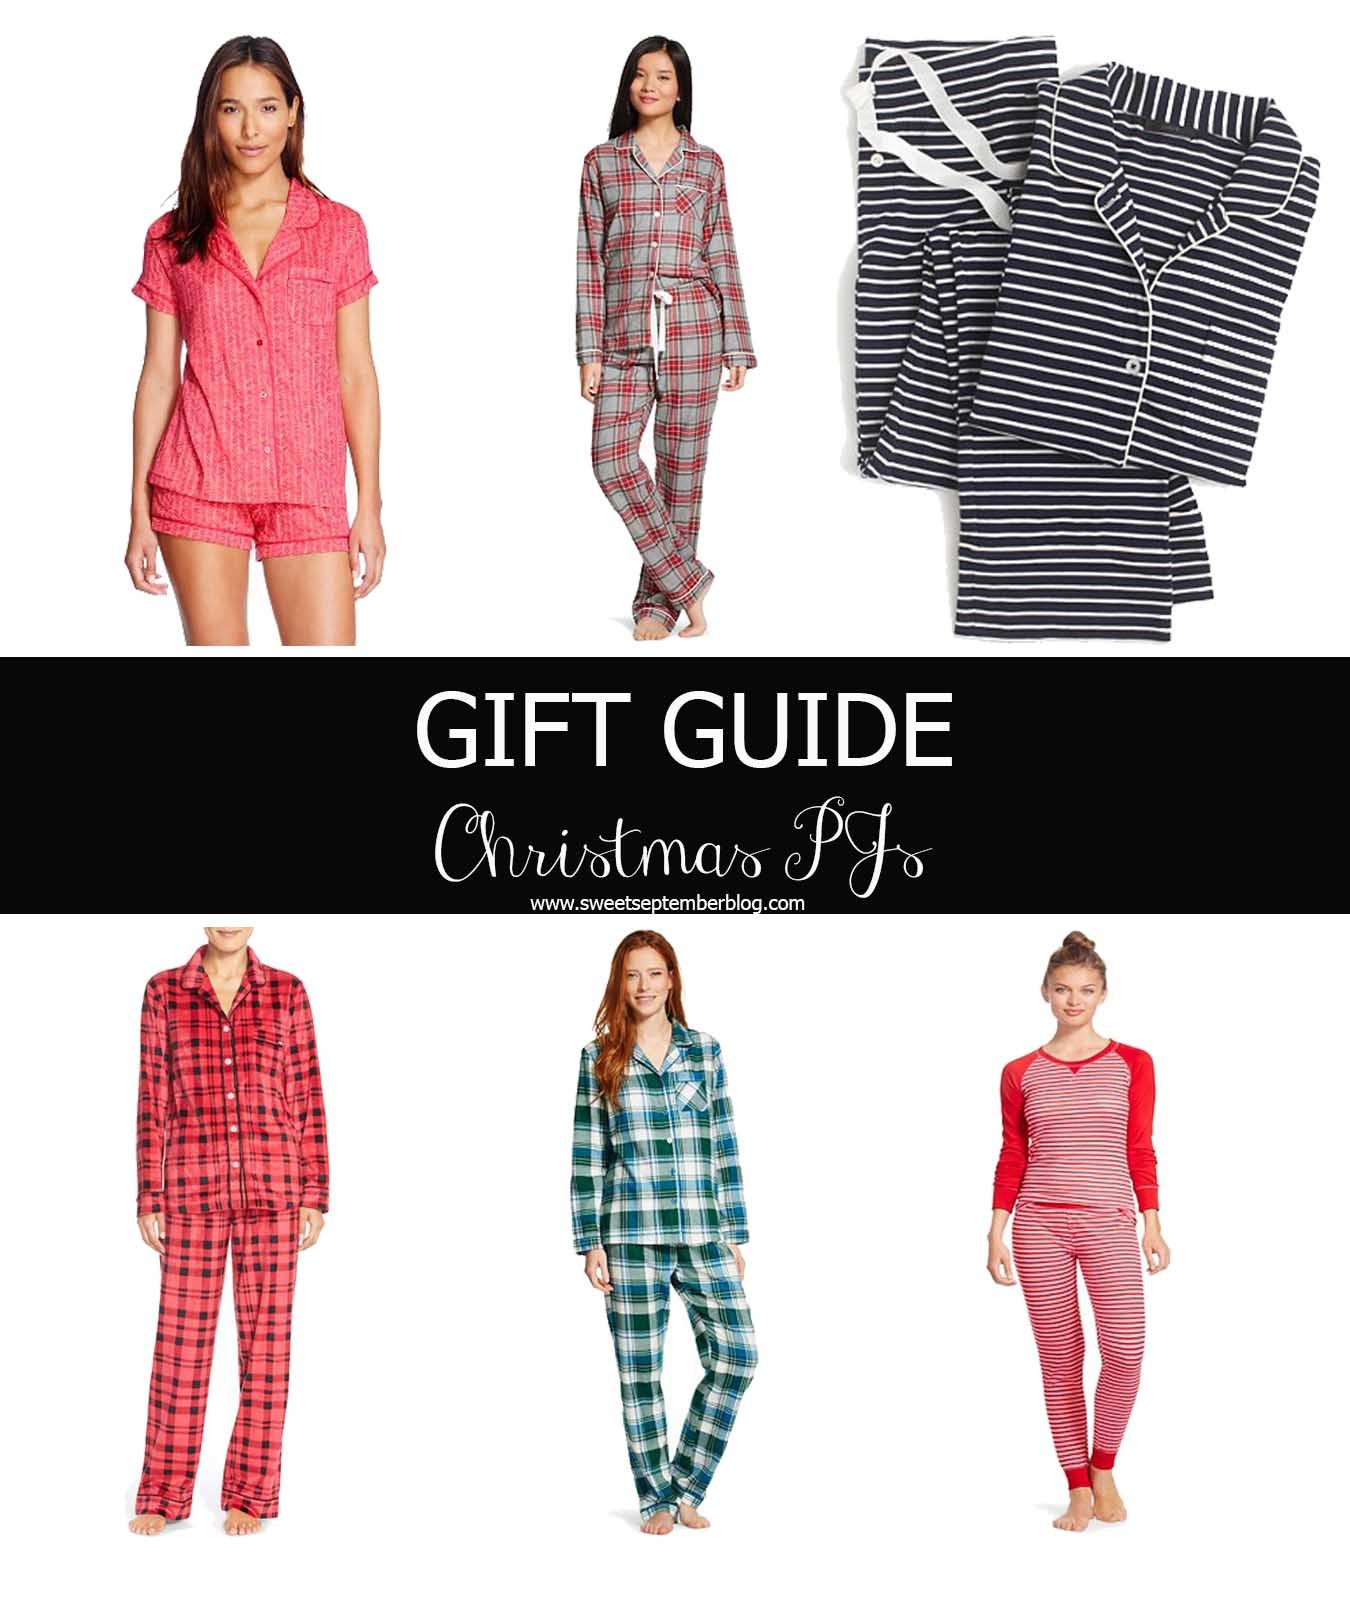 Gift Guide Christmas PJs